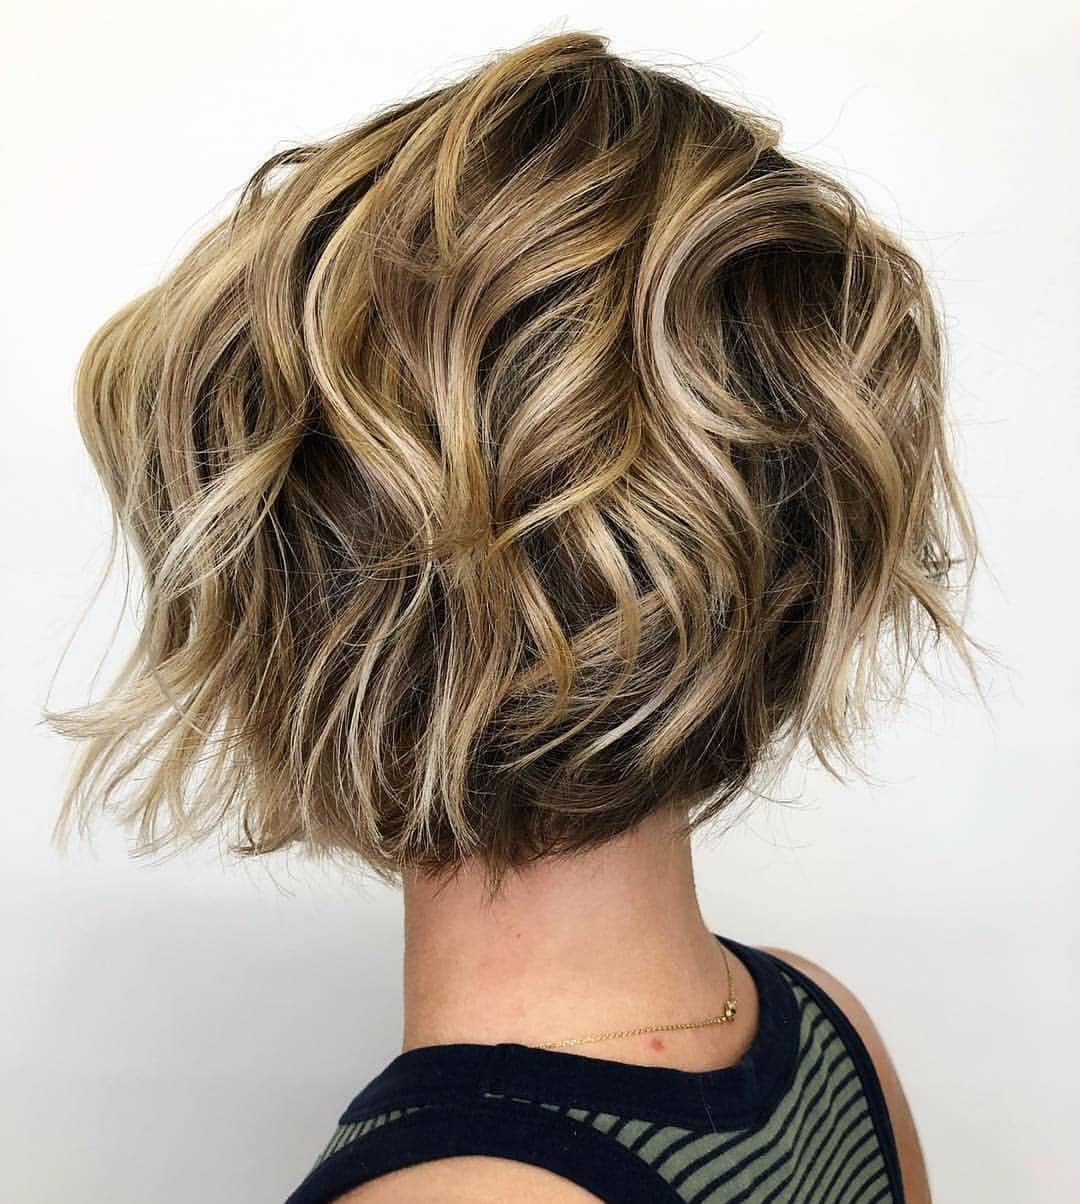 Graduated bob: Woman with short, choppy bronde graduated bob hairstyle in a studio